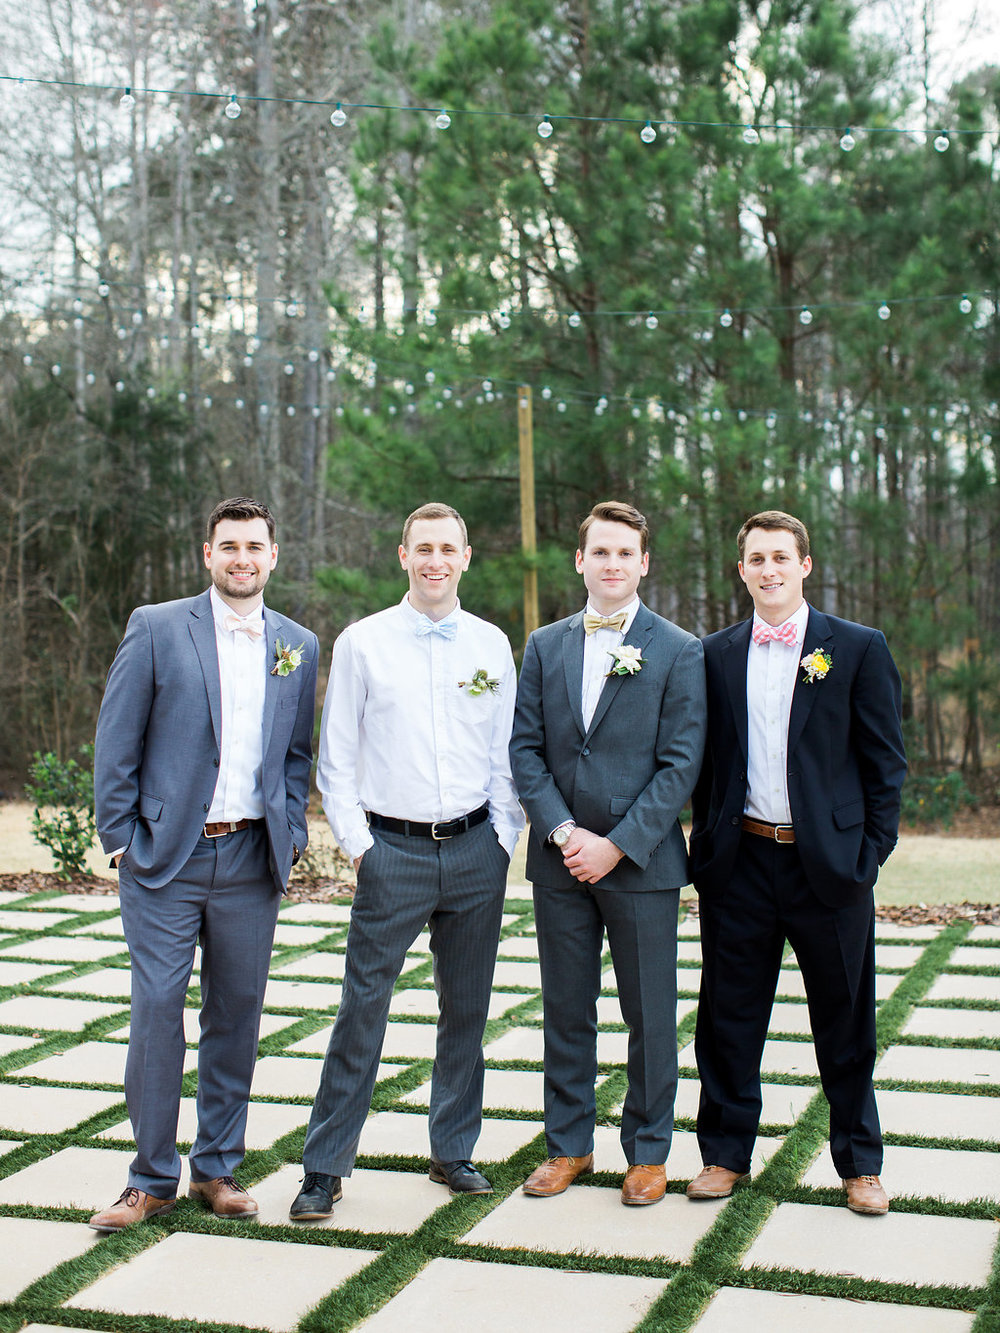 SW_Bowties_ANNAROUTHPHOTOGRAPHY_214.jpg